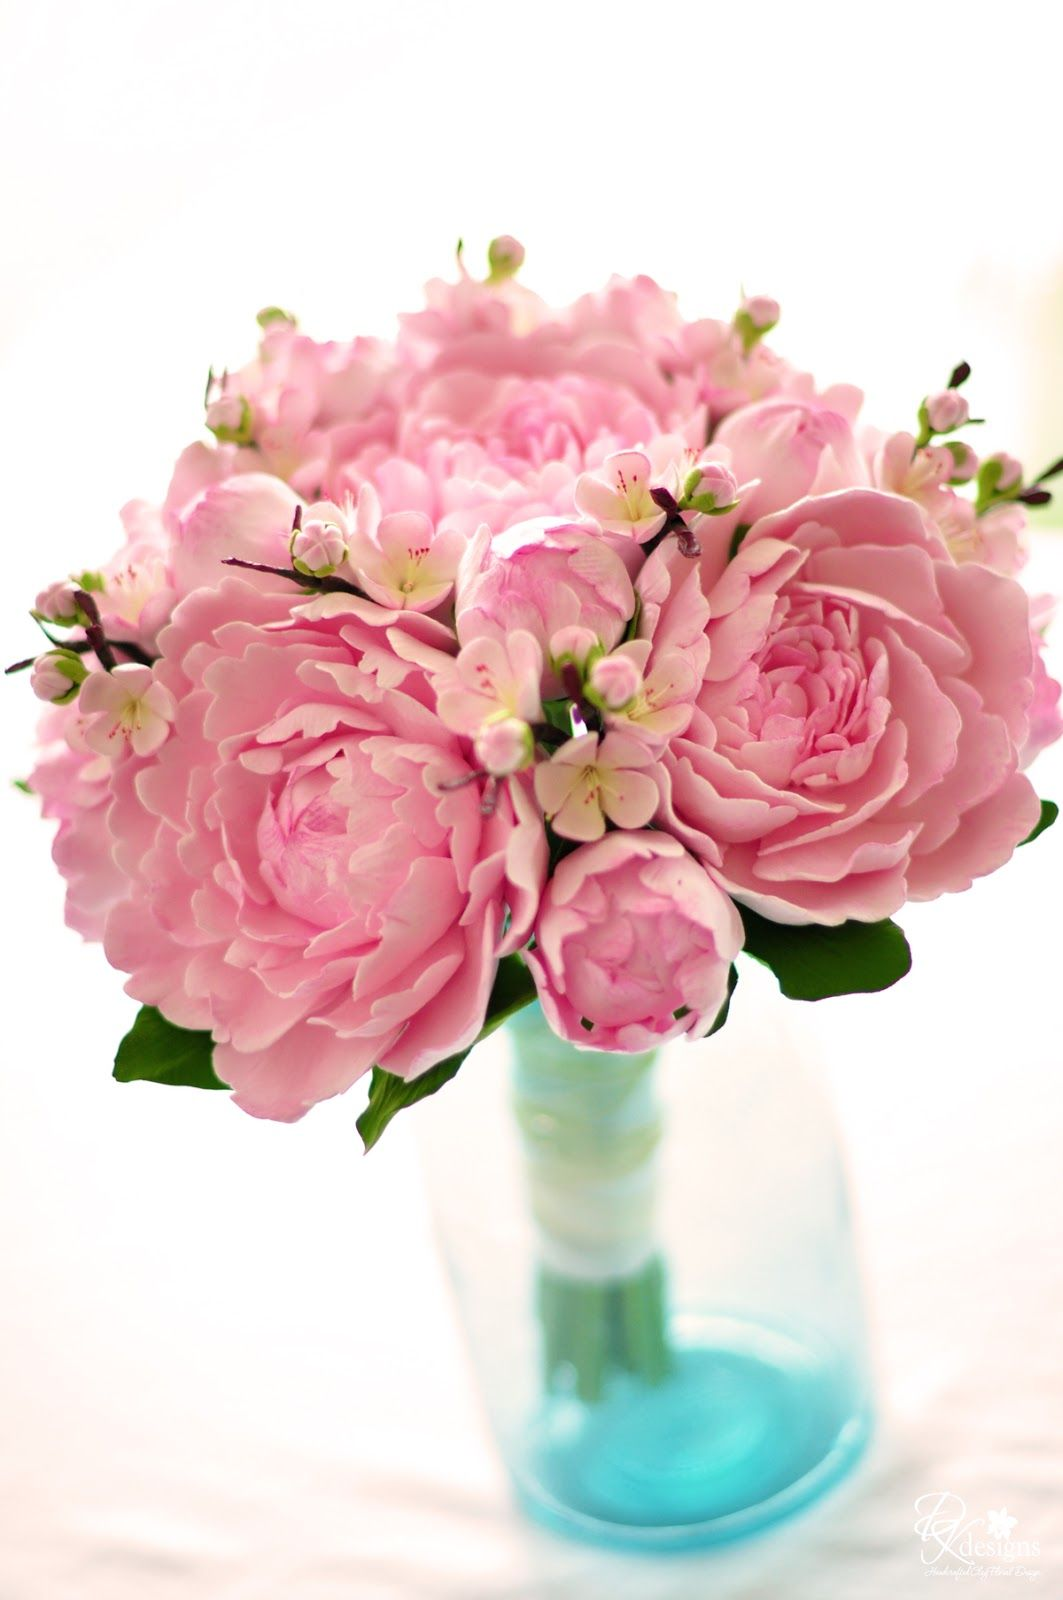 DK Designs: Pink Peony and Cherry Blossom Bouquet   Flowers ...